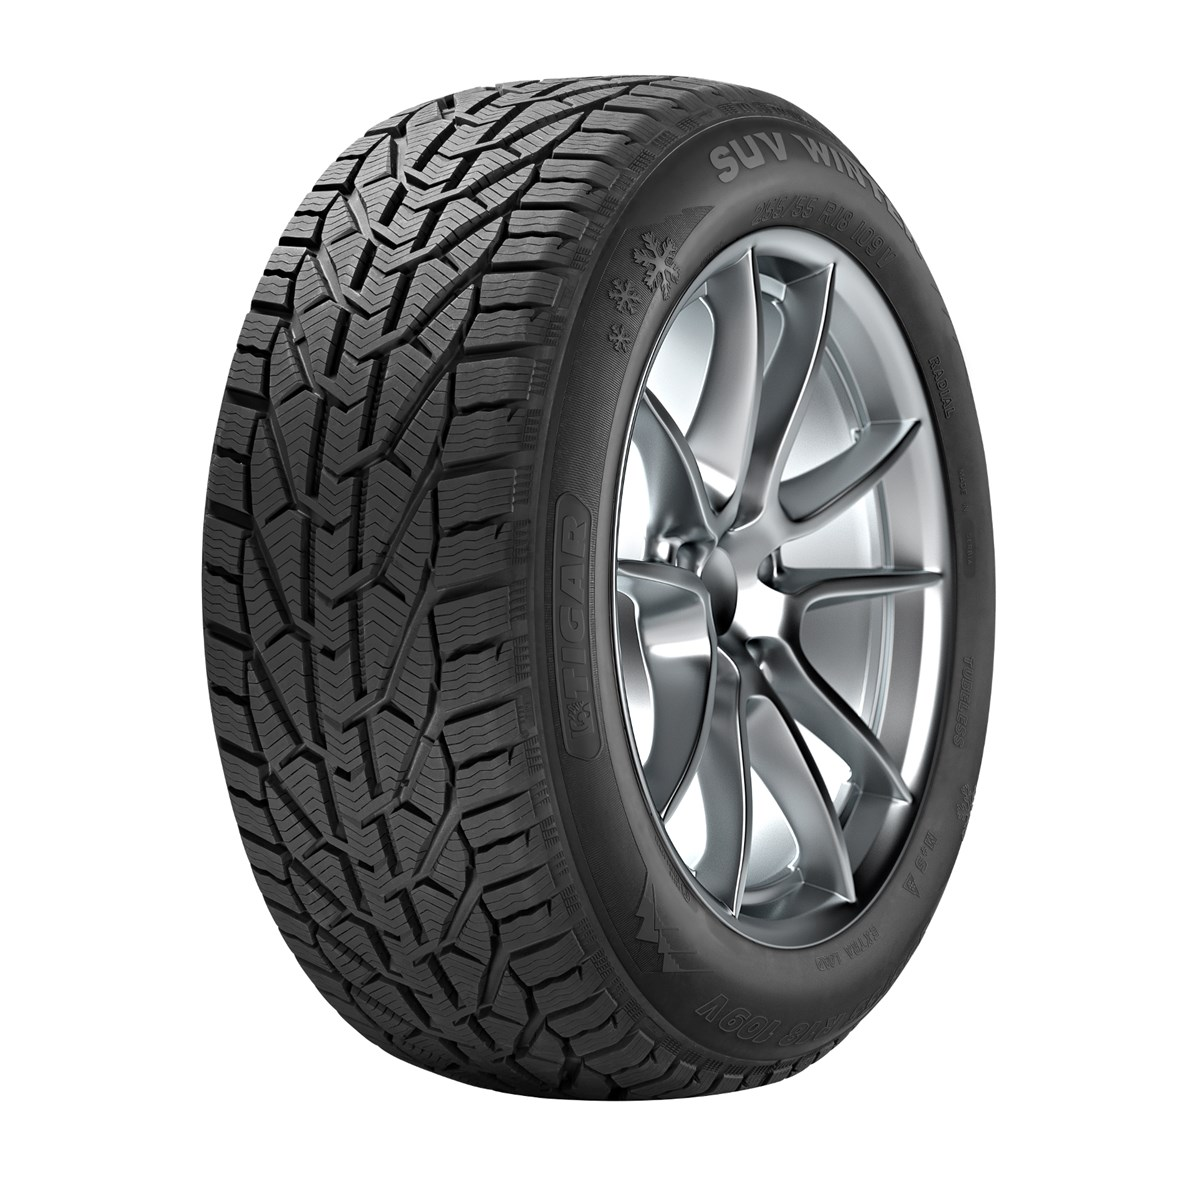 Pneu 215/70R16 100H TIGAR SUV WINTER